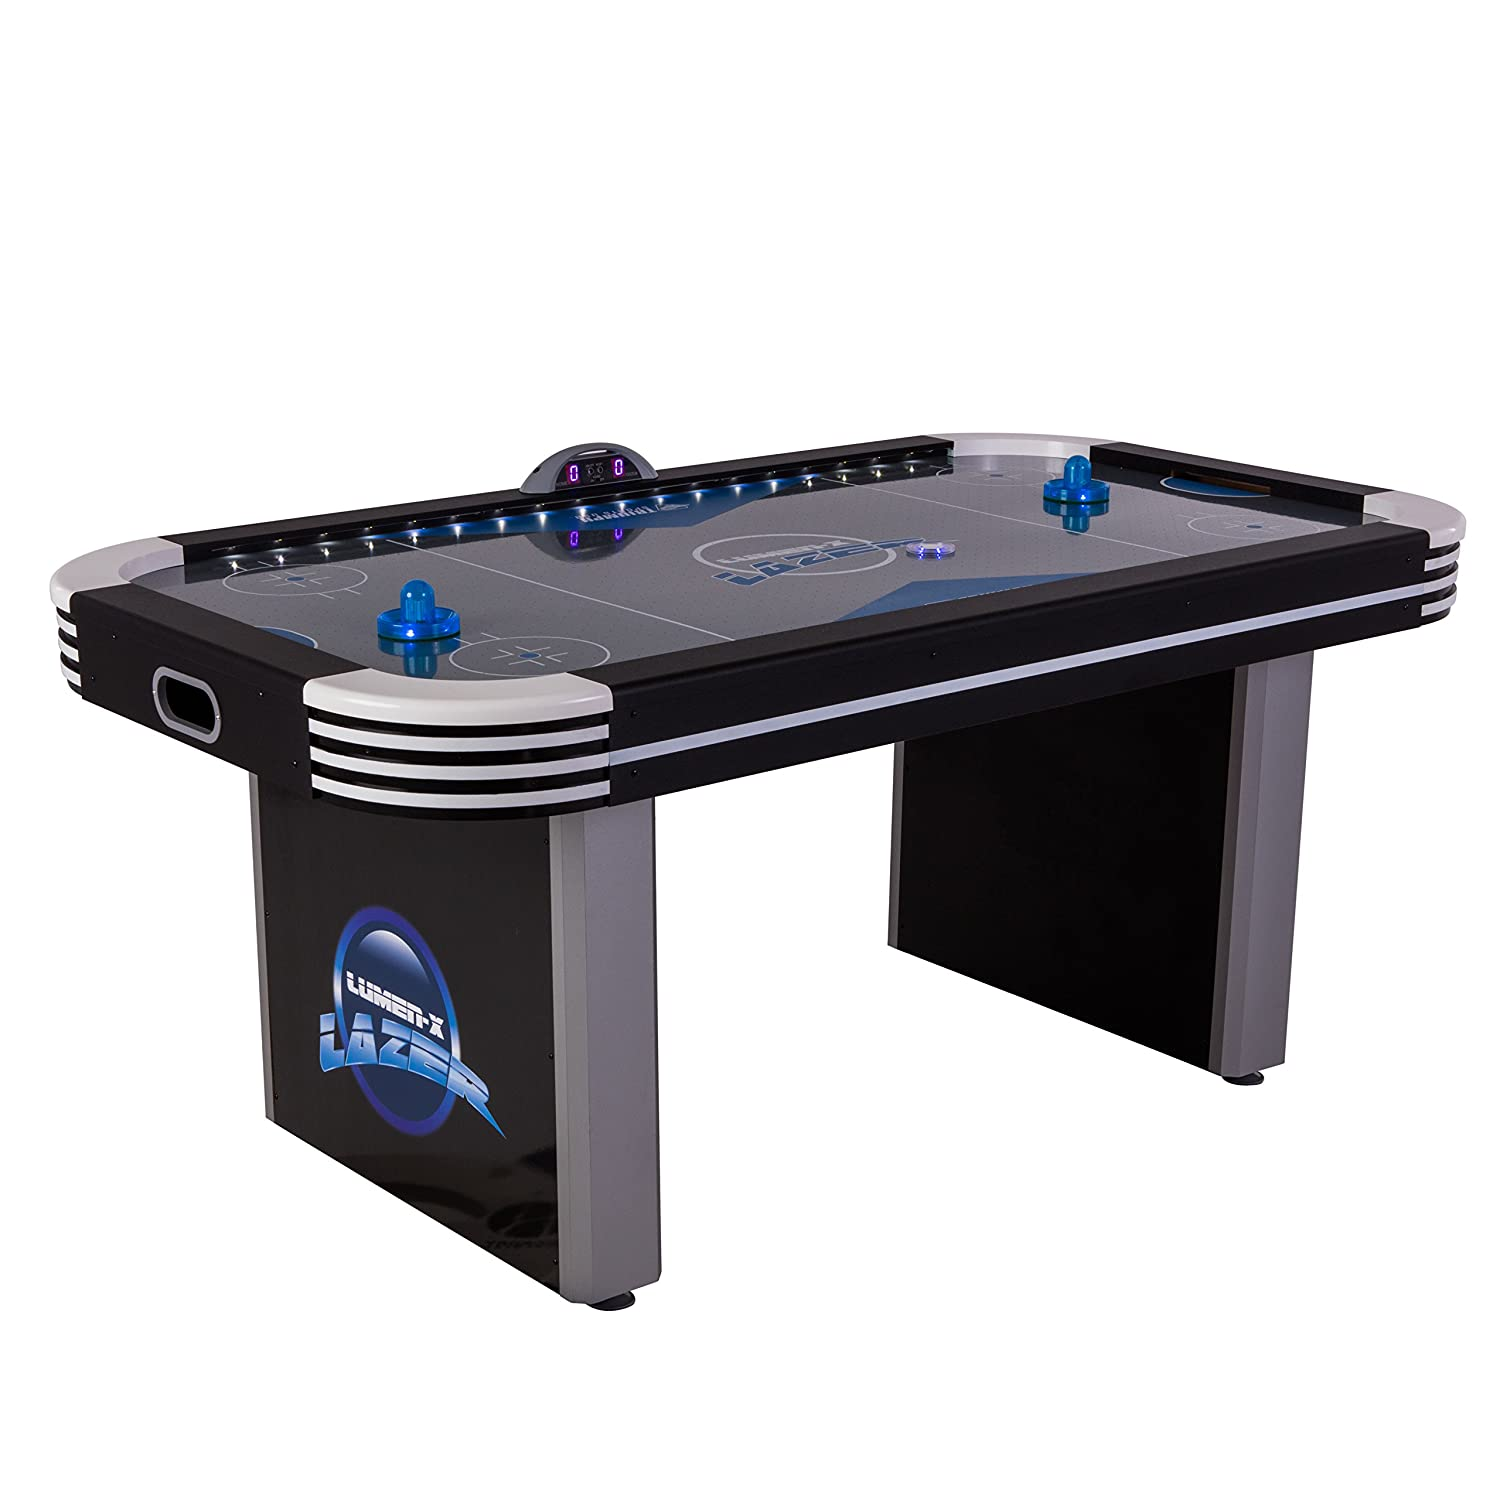 Triumph Lumen-X Lazer 6' Interactive Air Hockey Table Black Friday Deals